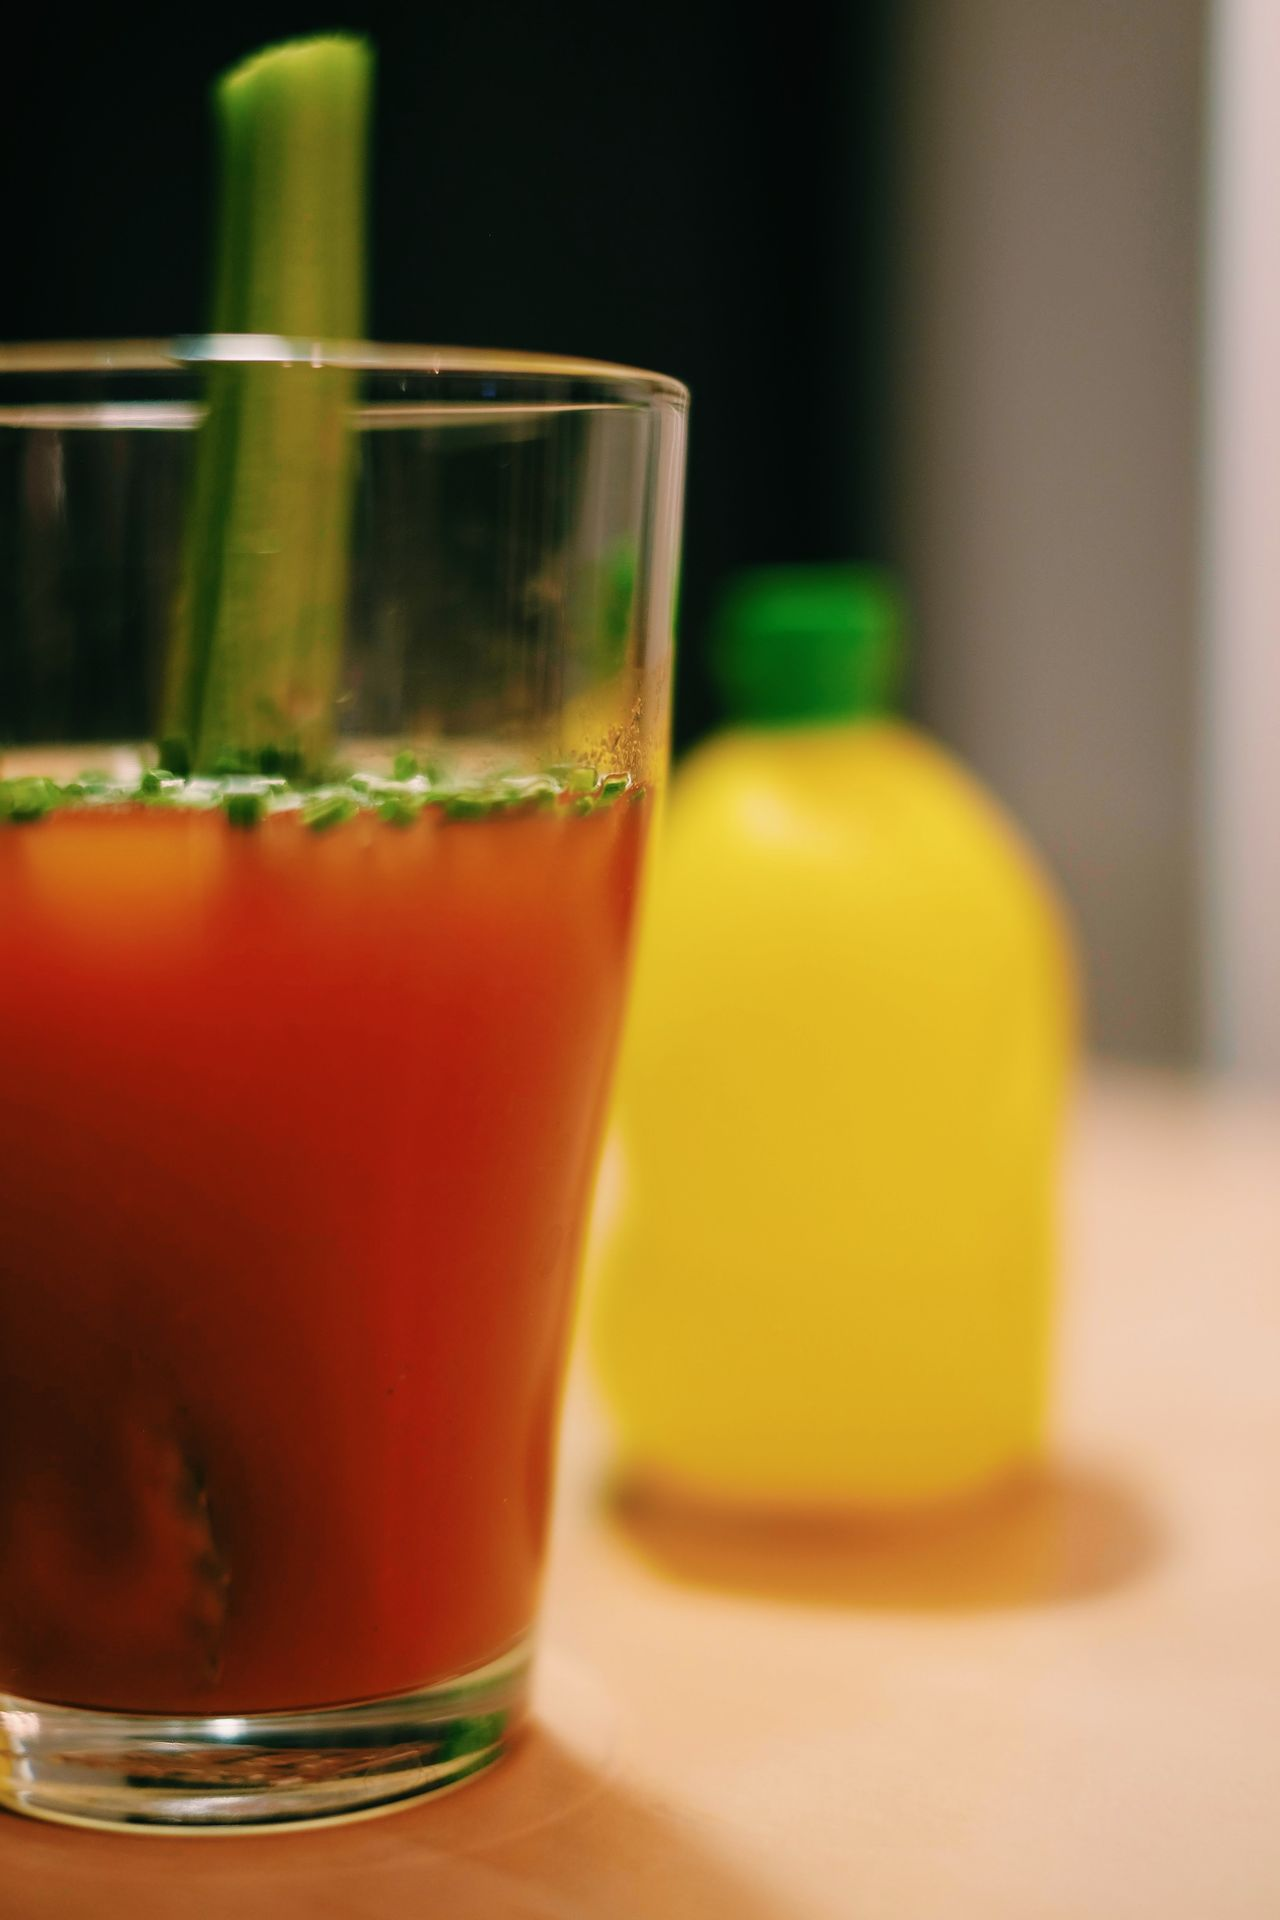 Blended Drink Bloody Mary Close-up Day Drink Drinking Glass Focus On Foreground Food Food And Drink Freshness Fruit Healthy Eating Healthy Lifestyle Indoors  No People Refreshment Yellow